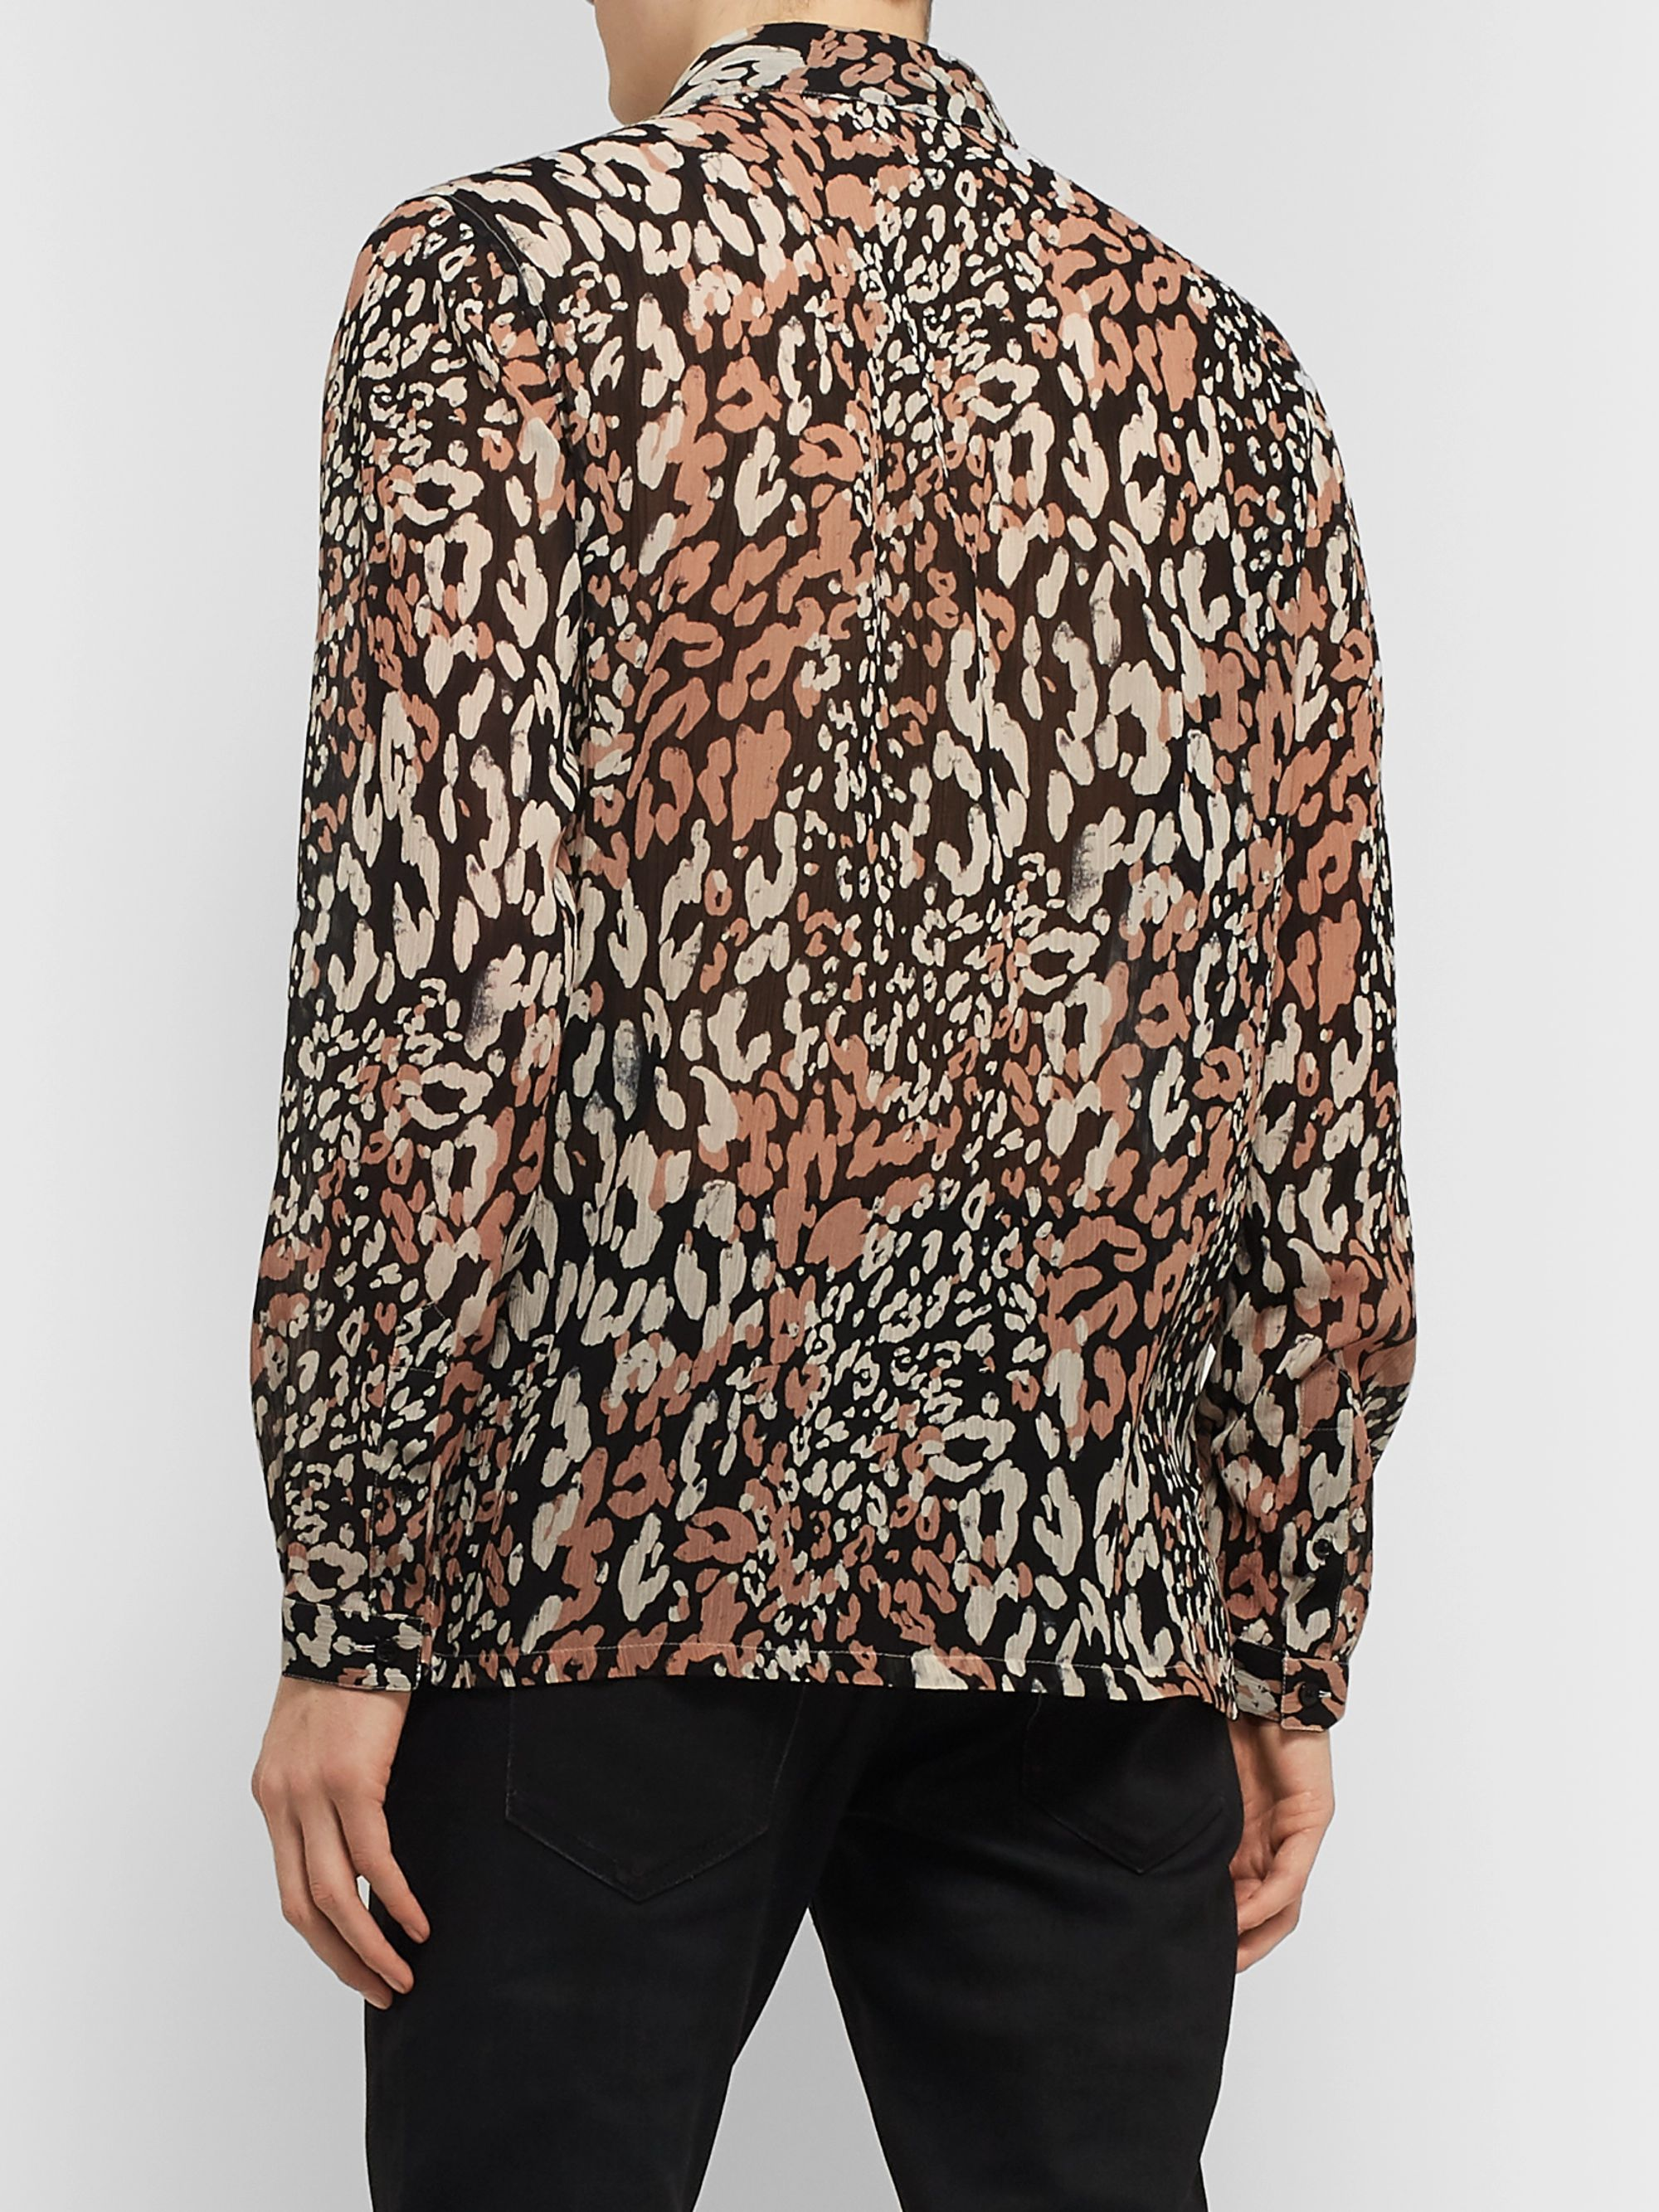 SAINT LAURENT Leopard-Print Cotton and Silk-Blend Shirt